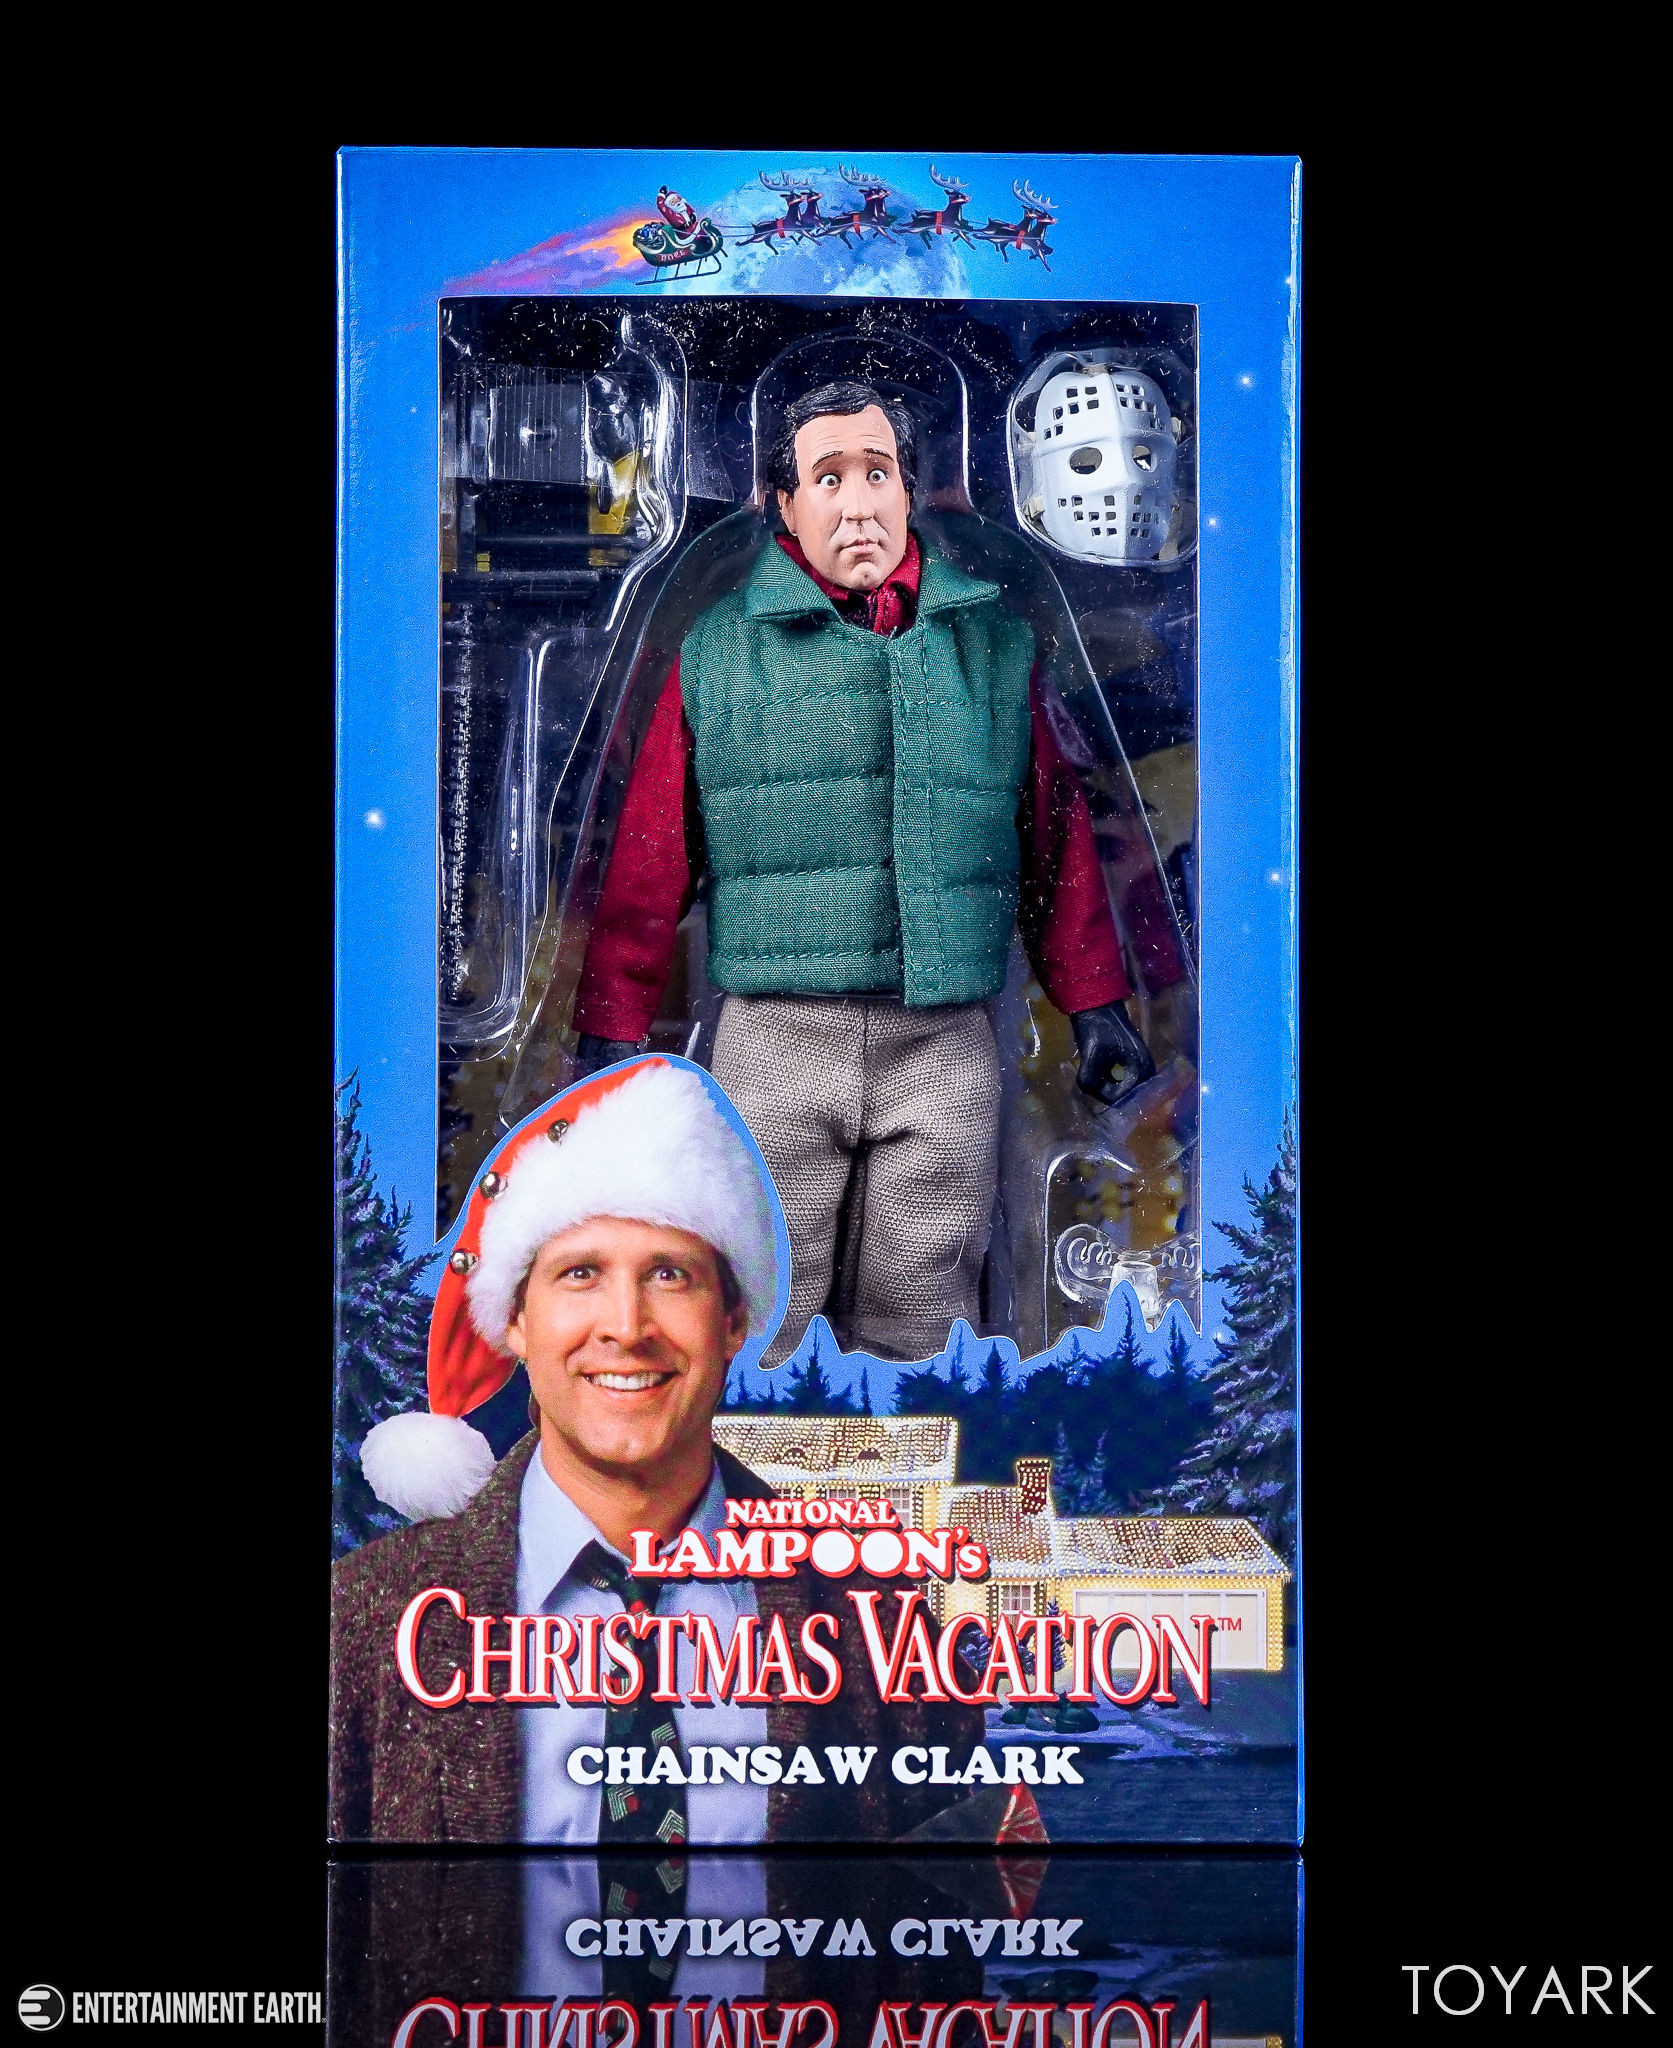 Christmas Vacation Chainsaw Clark 001